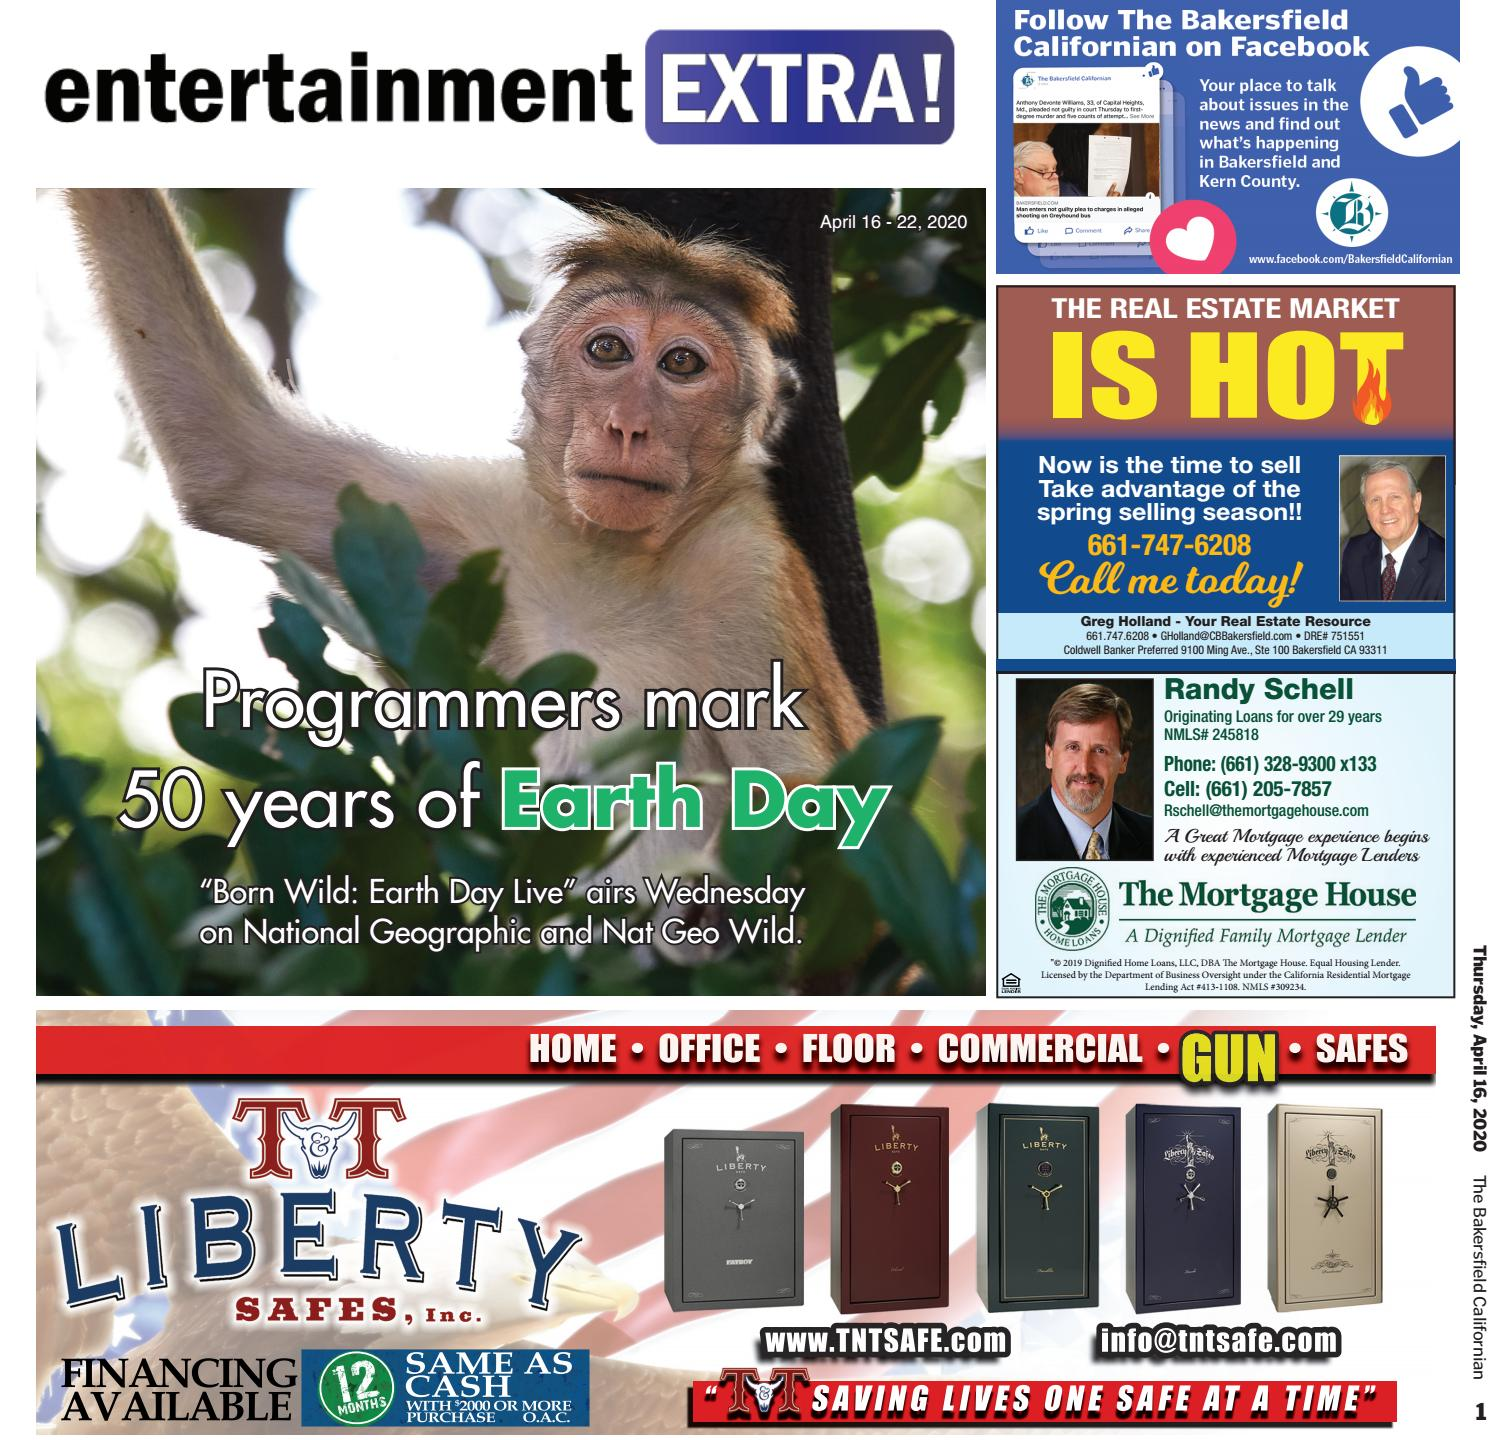 Entertainment Extra April 16 2020 April 22 2020 By The Bakersfield Californian Specialty Publications Issuu